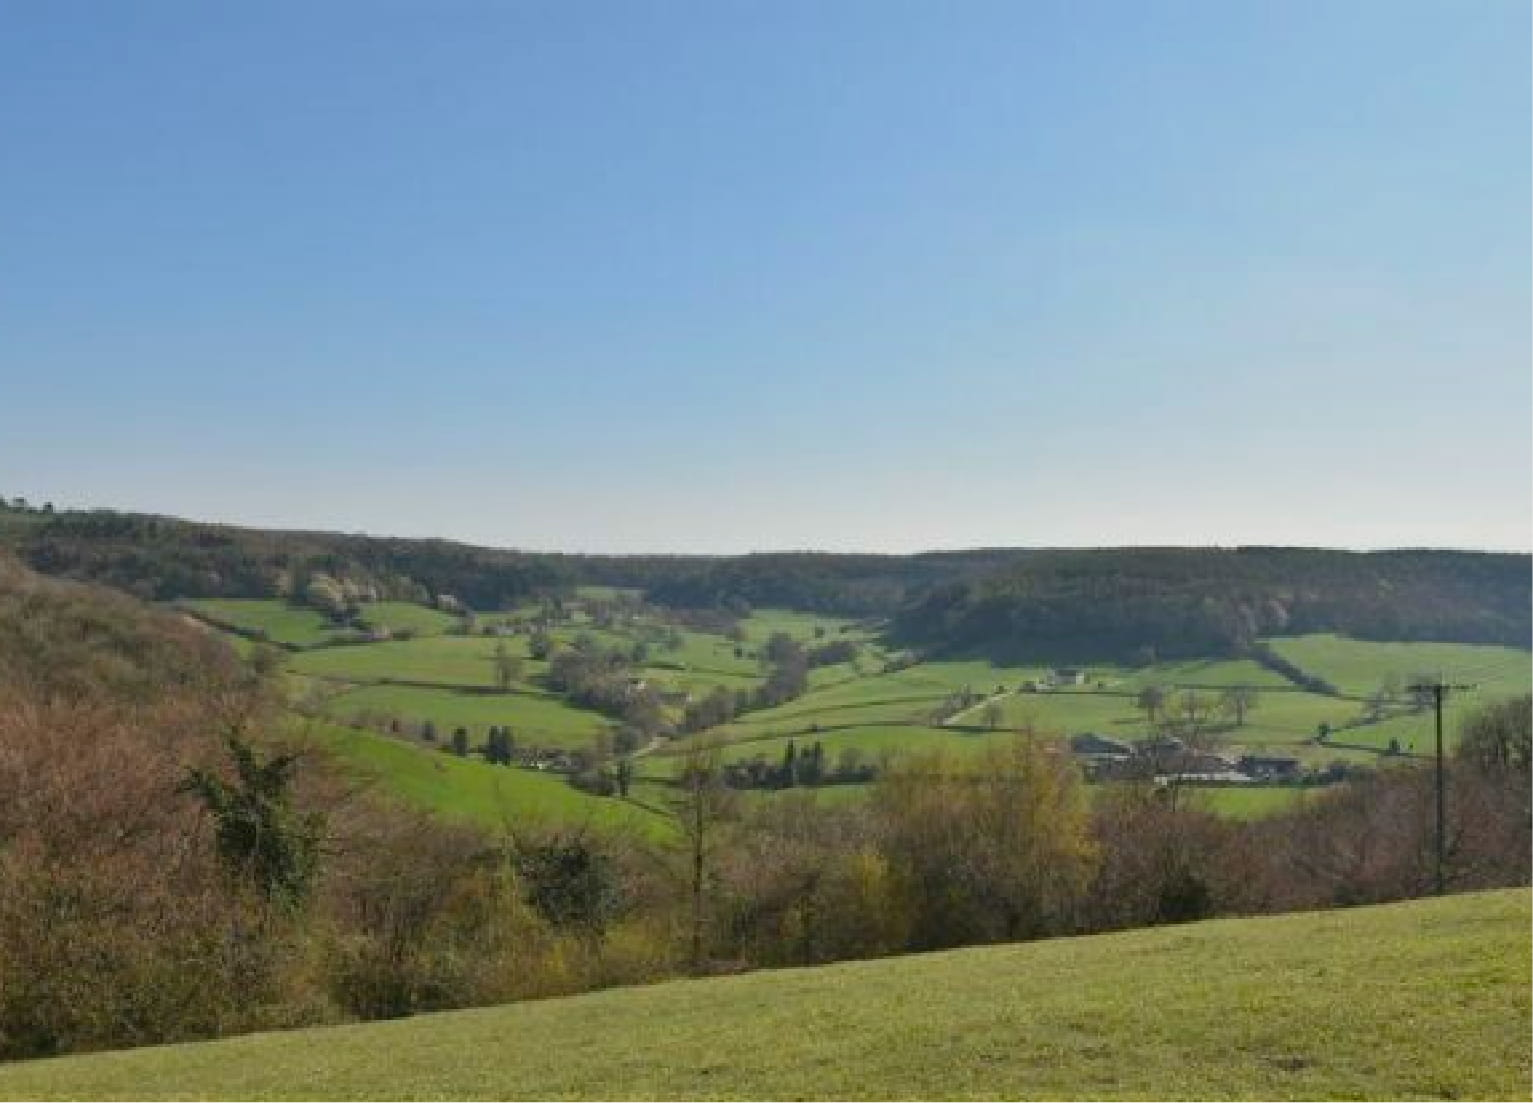 Cotswold scenery and hills